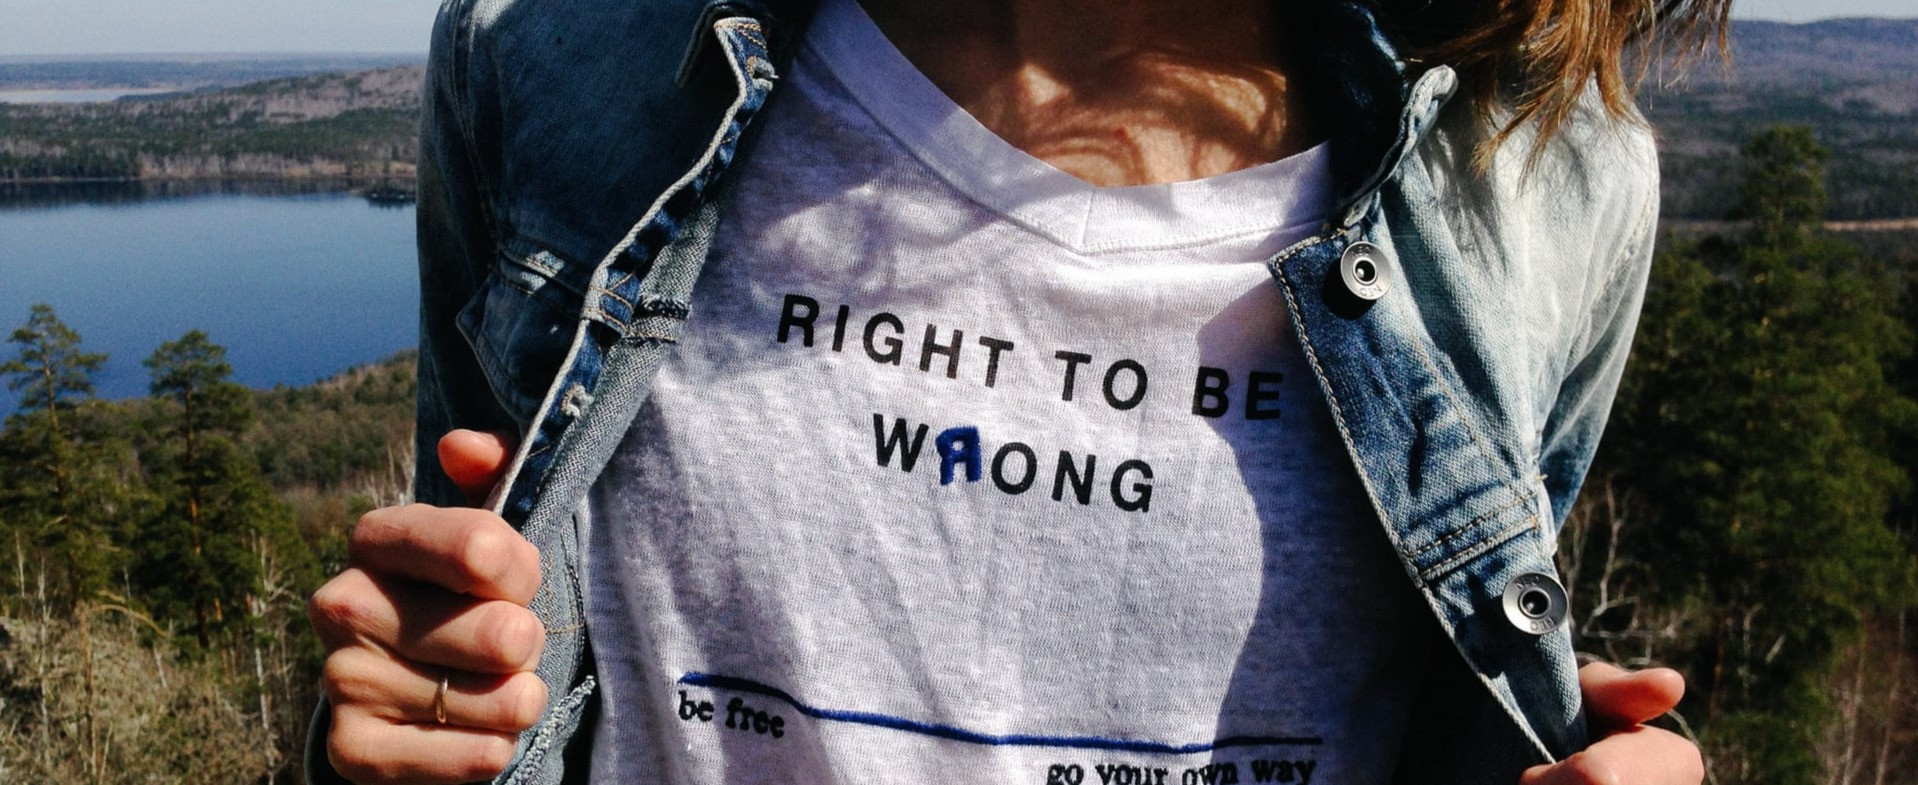 Why Admitting You're Wrong Should Be the New Right